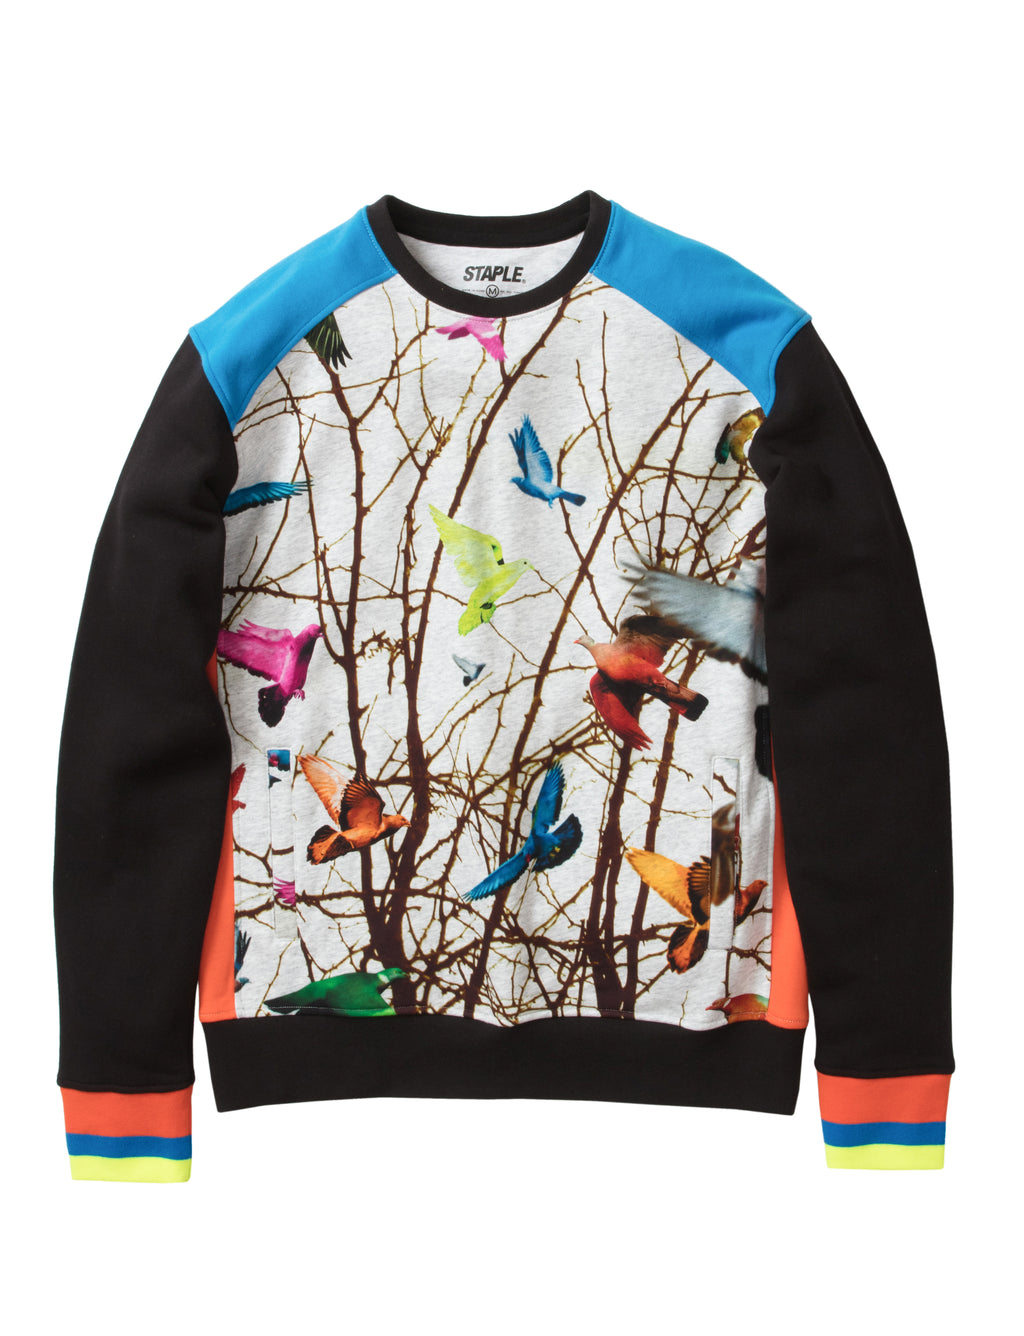 Foliage Crewneck - Tee | Staple Pigeon